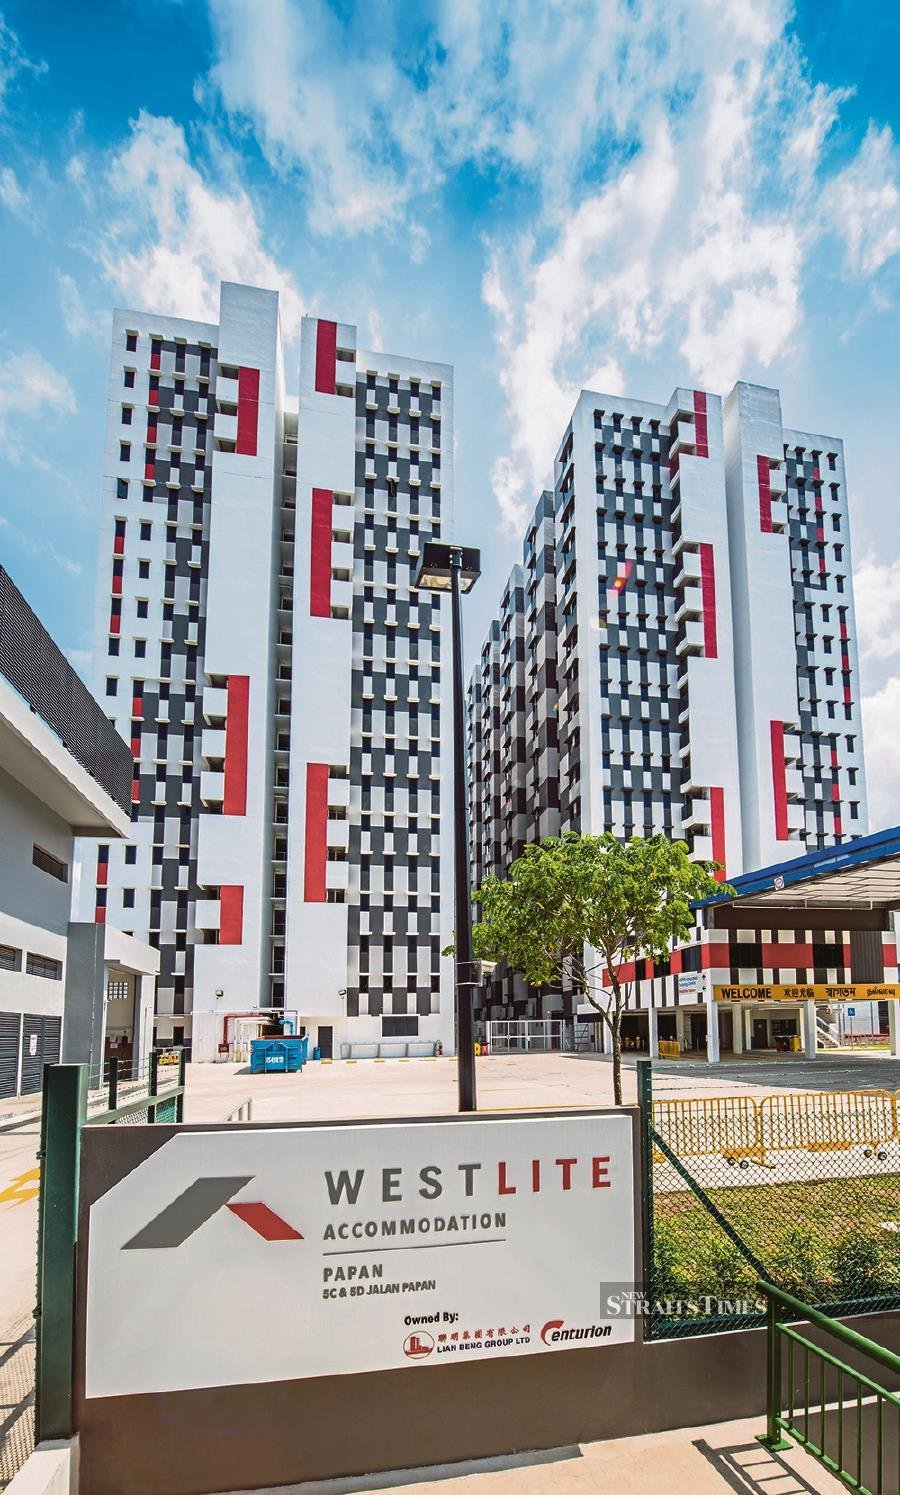 Westlite Accommodations in Papan, Singapore.